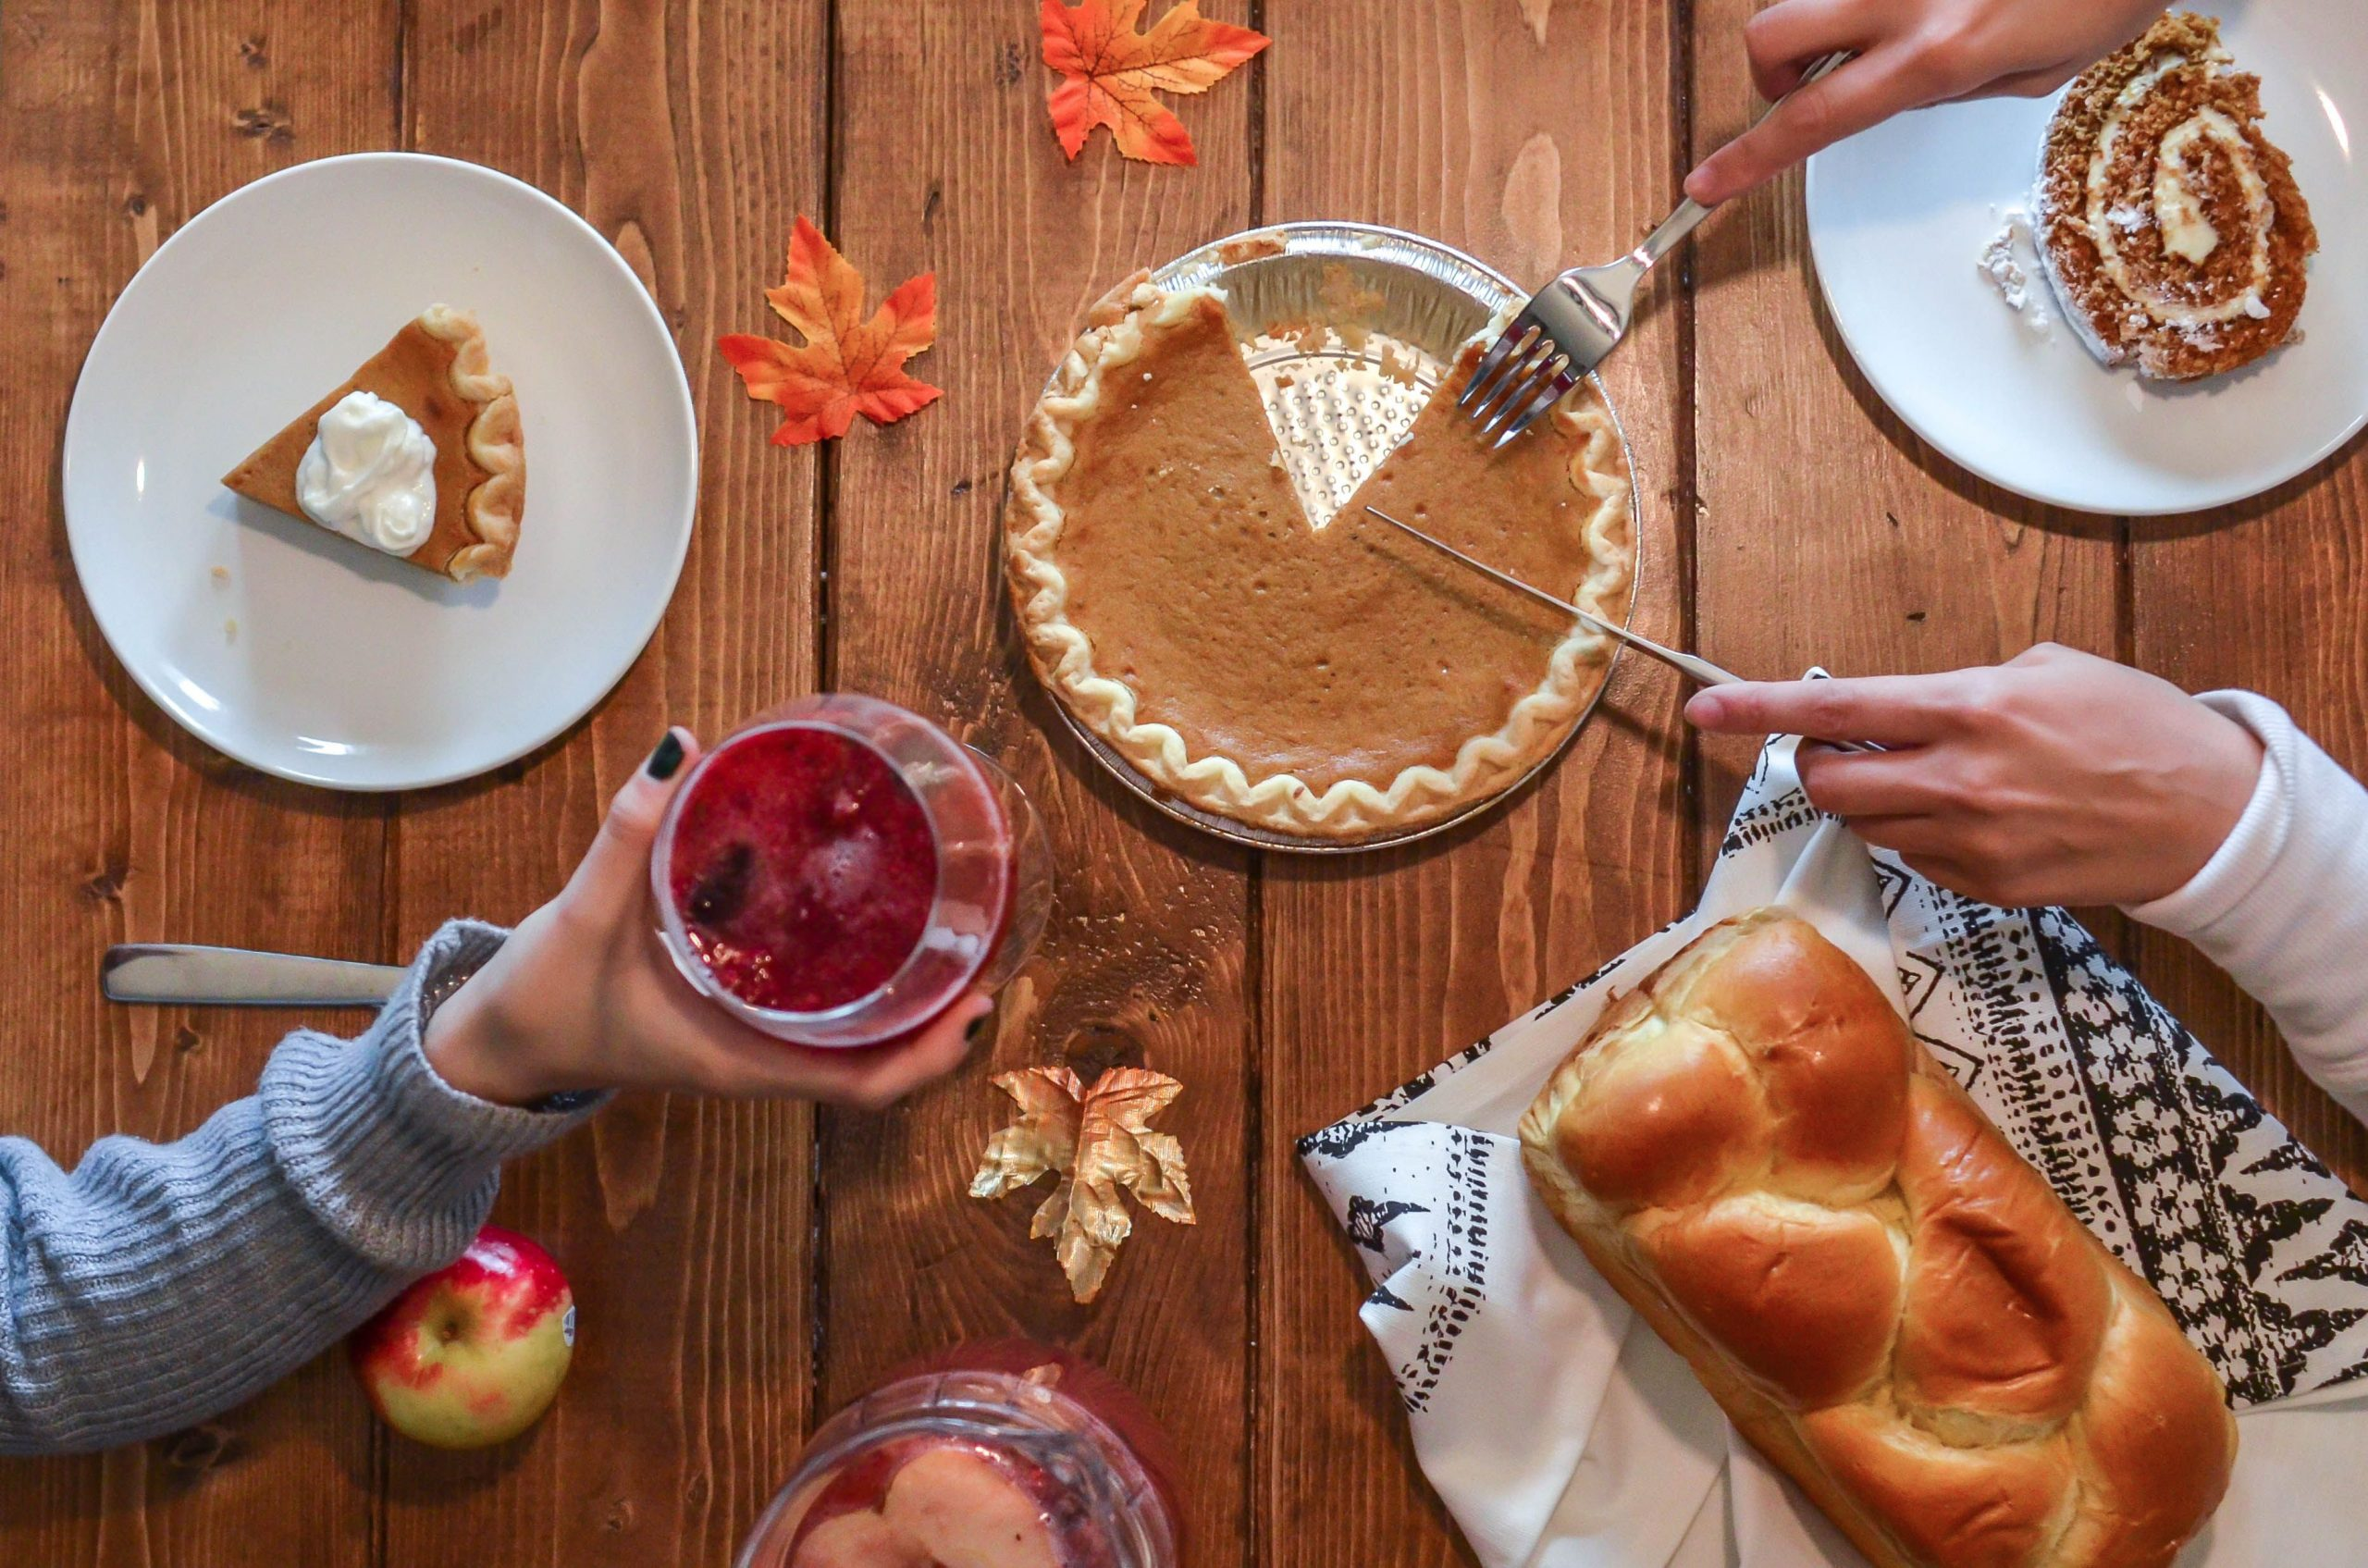 SOBEWFF® and Constellation Culinary Group offering Thanksgiving To-Go this holiday season